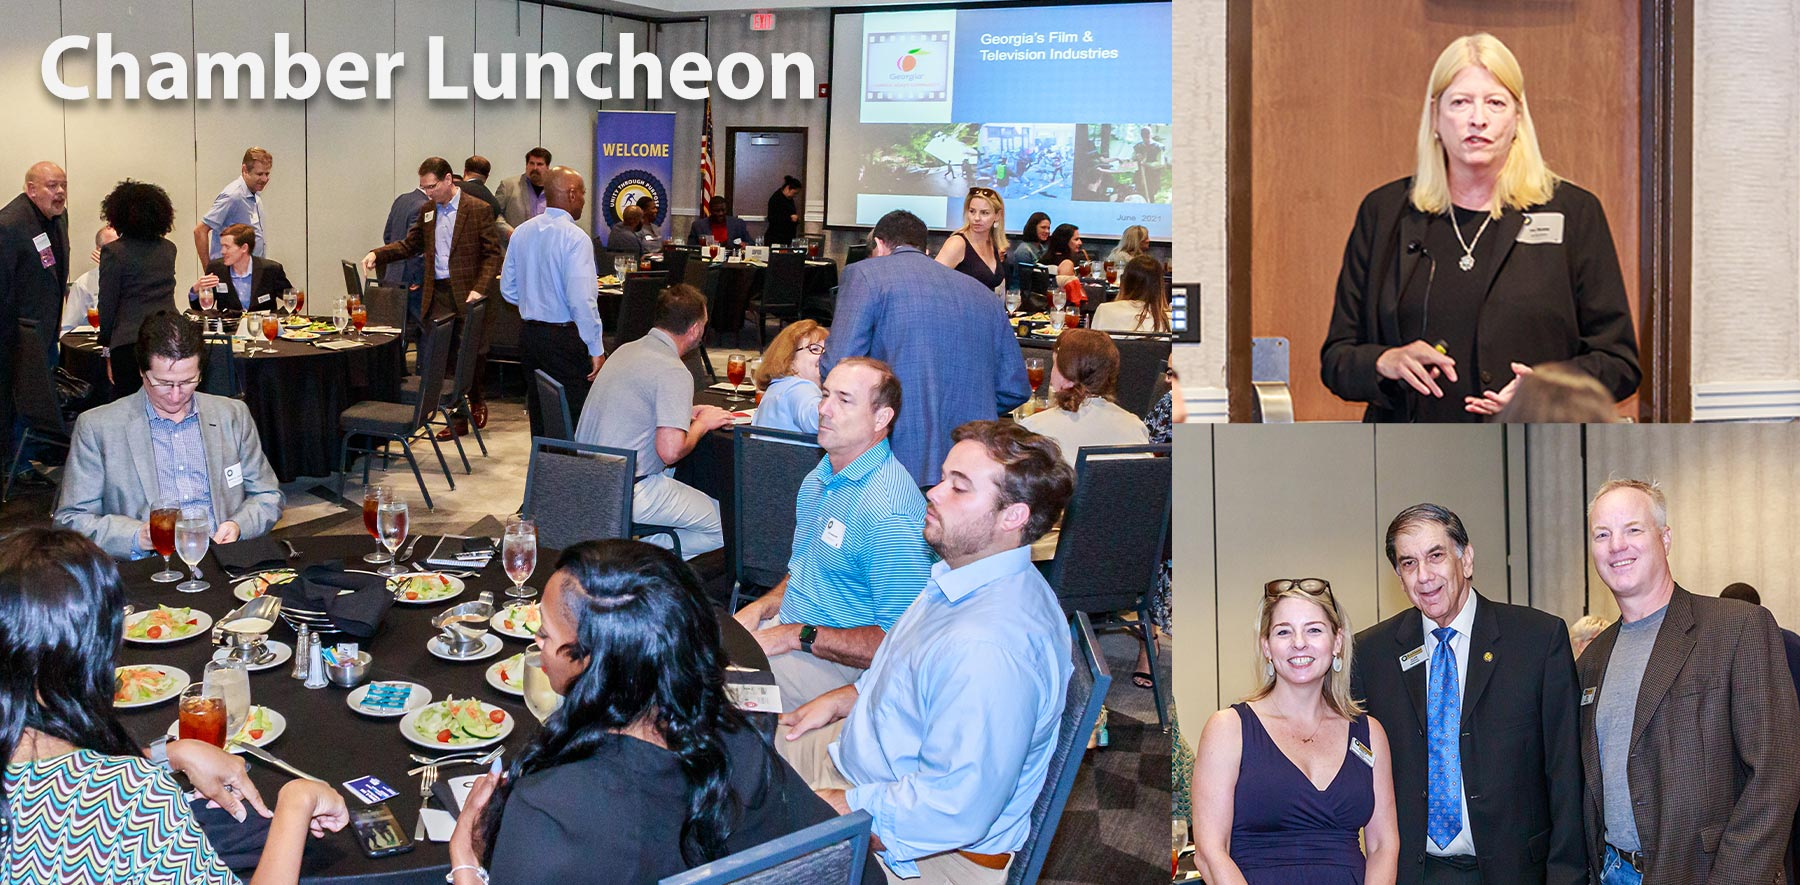 Ms. Lee Thomas addressed our luncheon on the present state of Georgia's film industry, and the recovery from the pandemic on June 10, 2021.